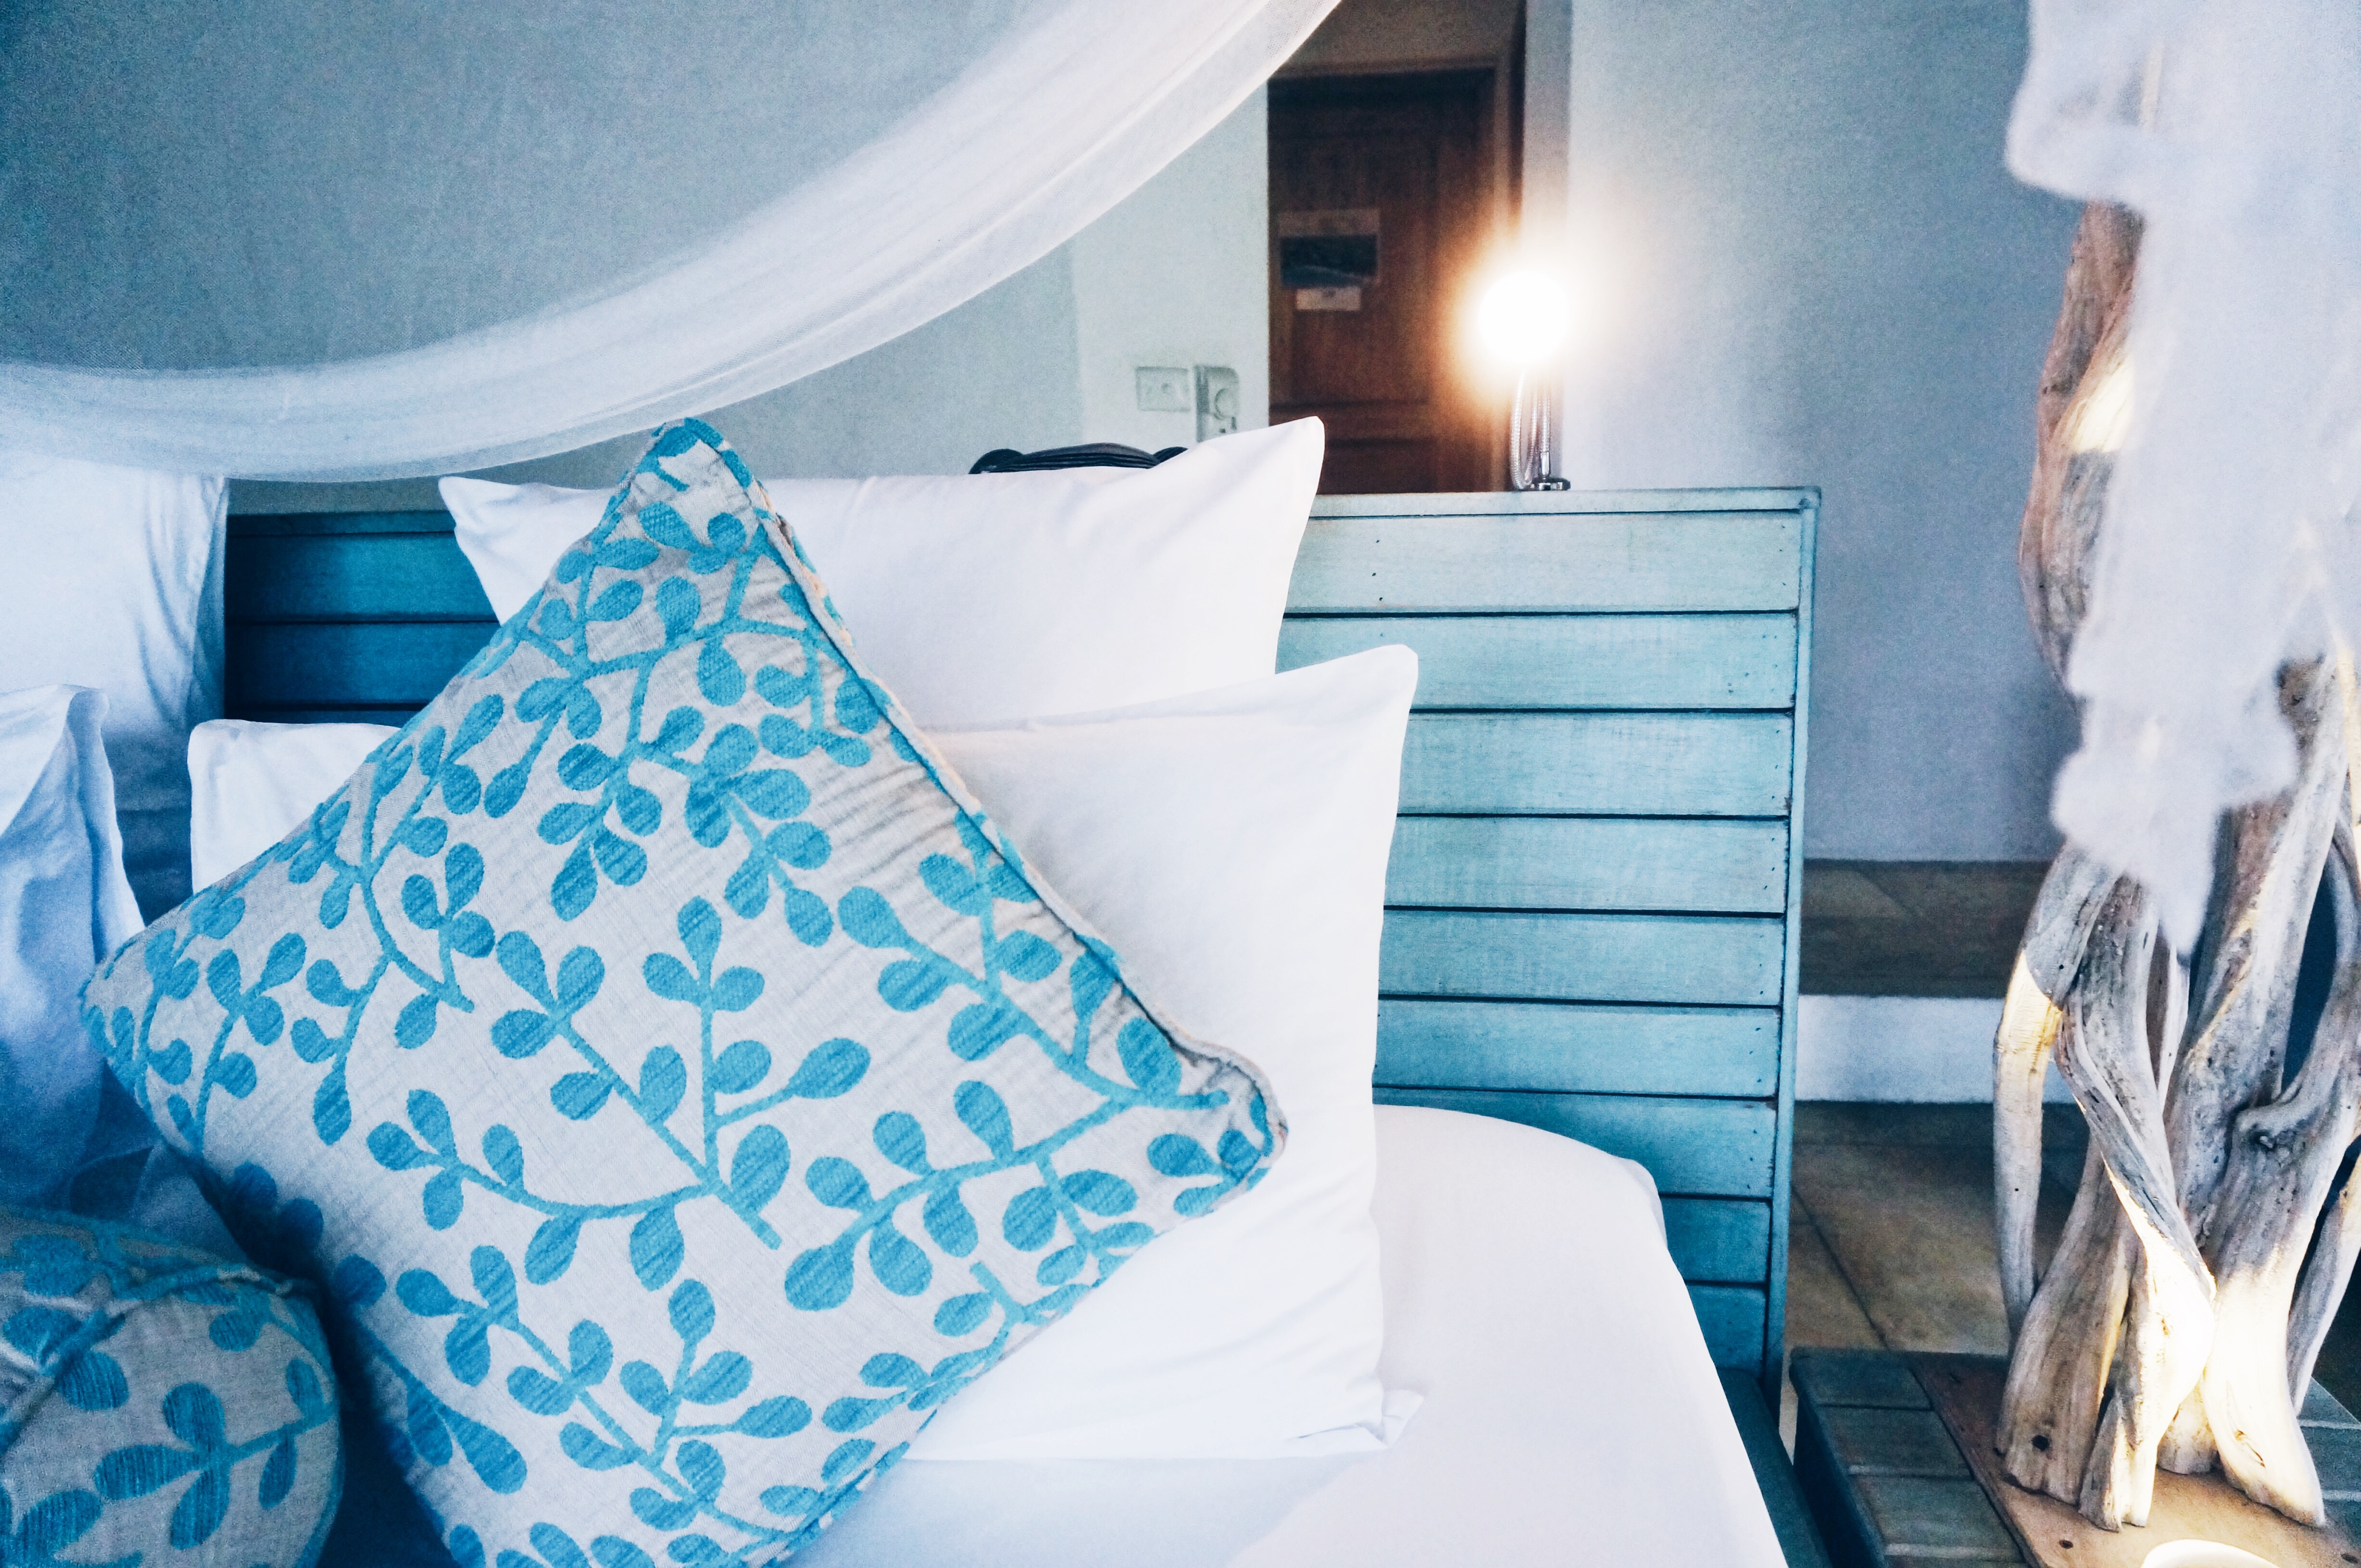 Traumhotel im Beachstyle, maritimes Hotel in Thailand, Koh Yao Noi